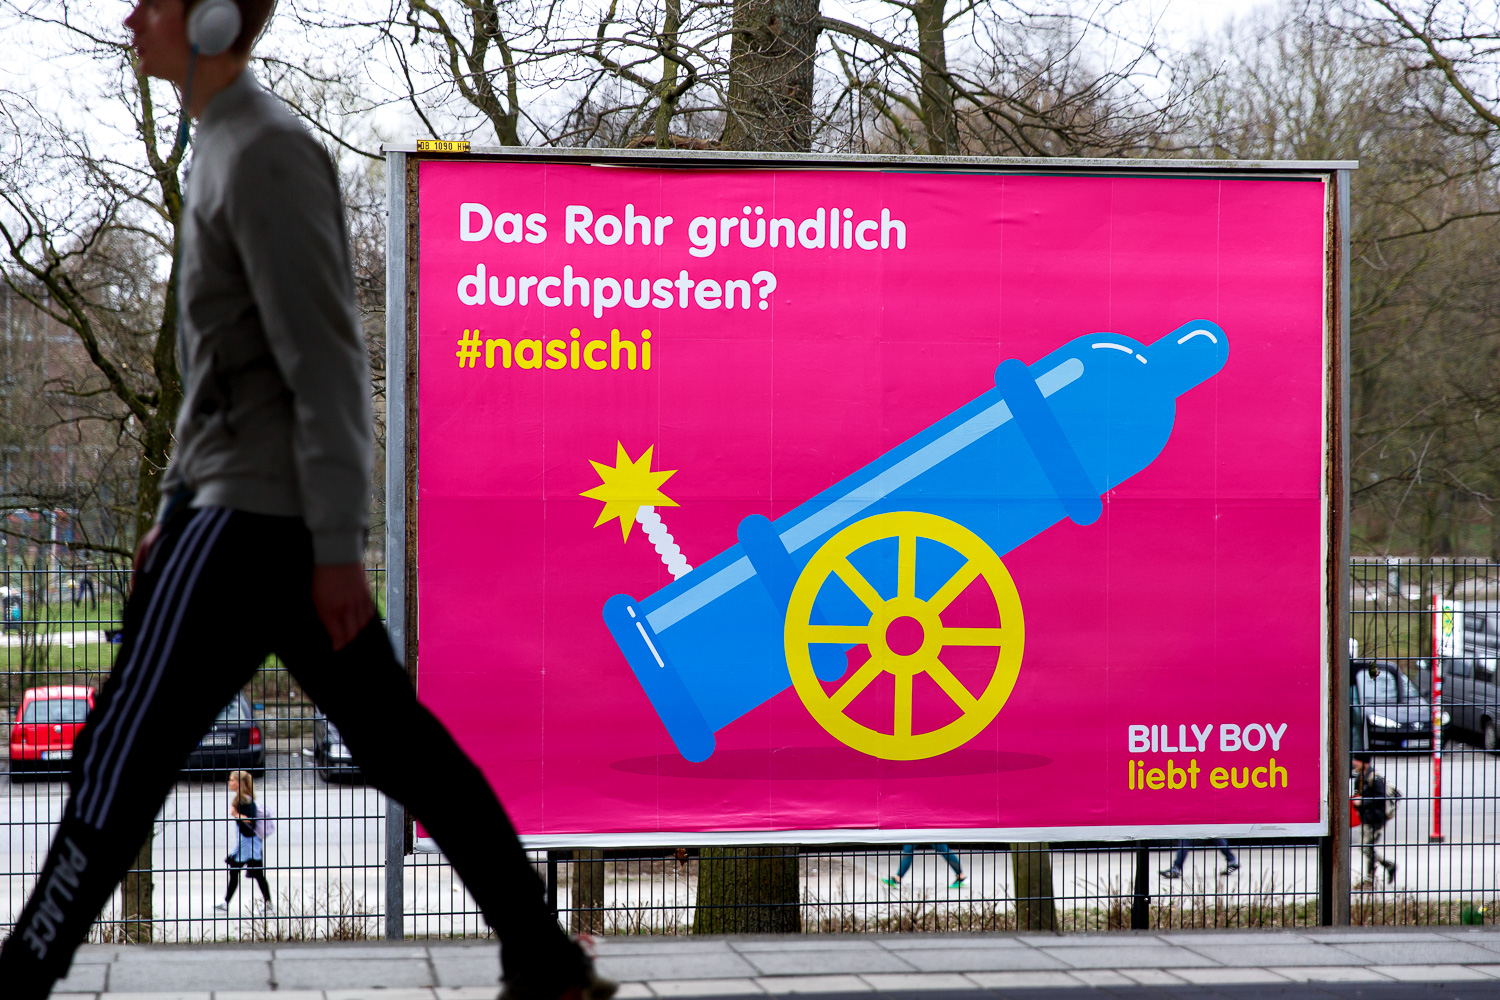 Billy Boy. nasichi Kampagne. 5